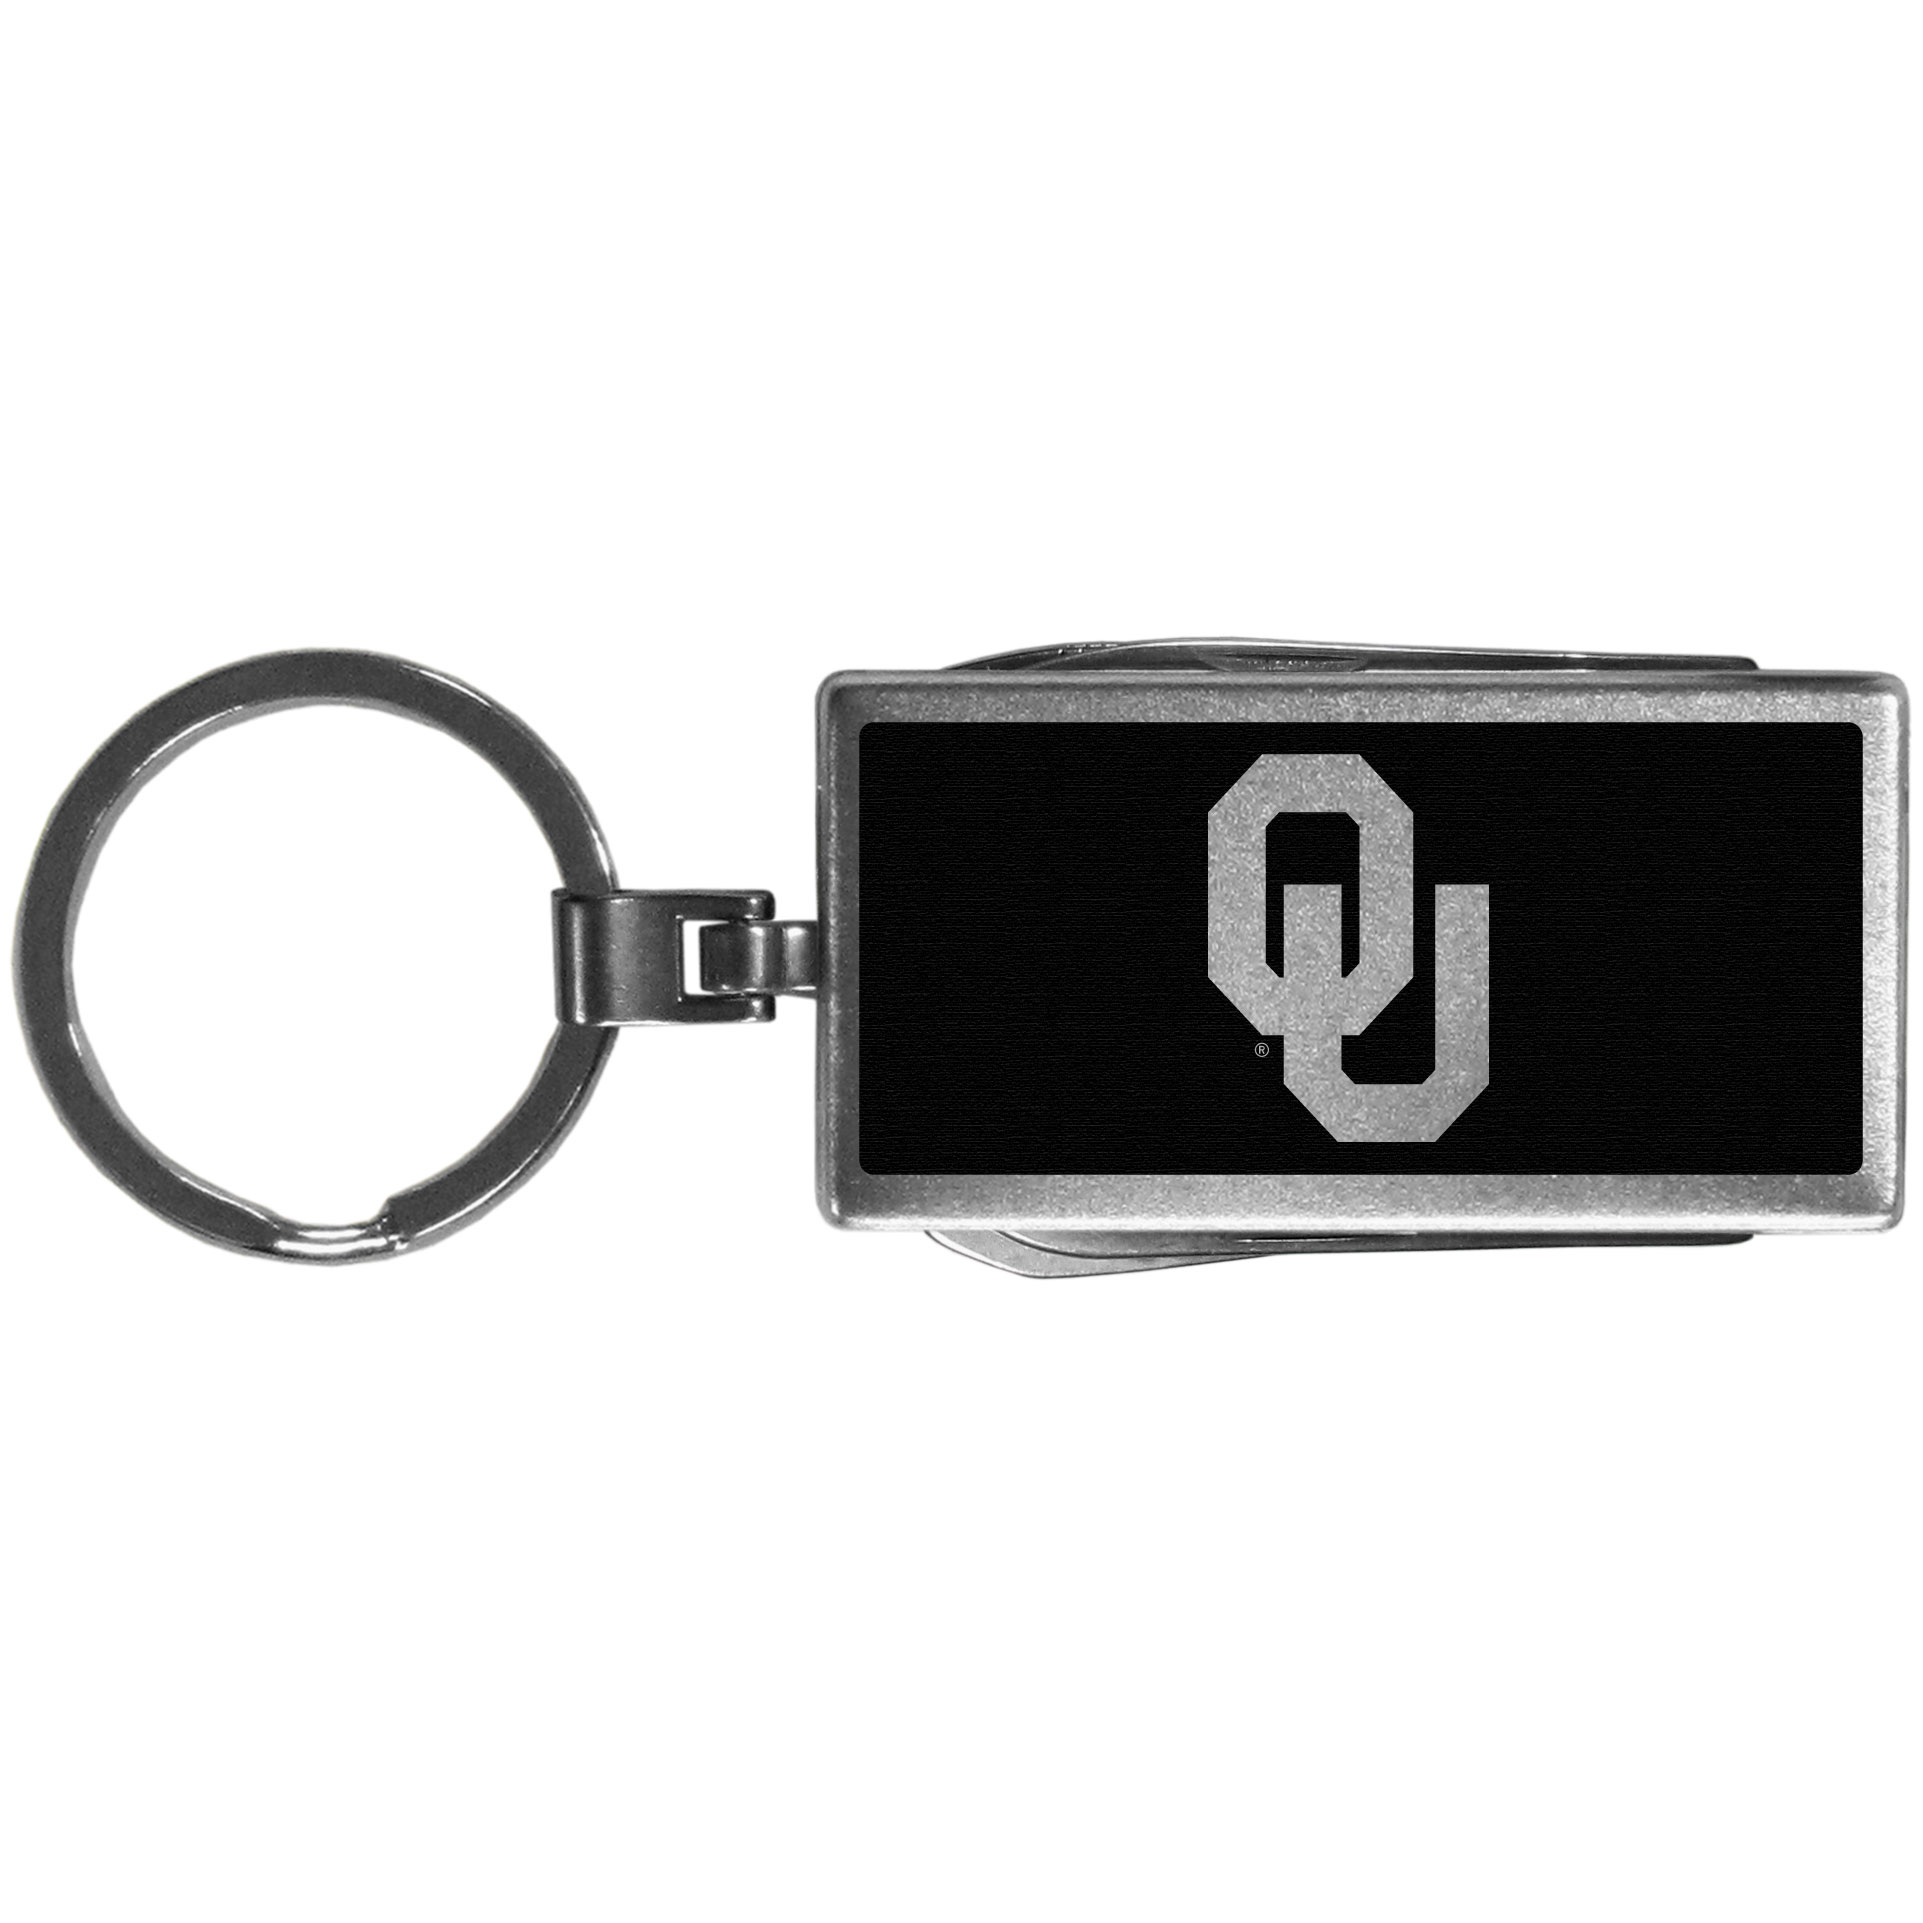 Oklahoma Sooners Multi-tool Key Chain, Black - Be the hero at the tailgate, camping, or on a Friday night with your Oklahoma Sooners Multi-Tool Keychain which comes complete with bottle opener, scissors, knife, nail file and screw driver. Be it opening a package or a beverage Siskiyou's Multi-Tool Keychain goes wherever your keys do. The keychain hangs at 4 inches long when closed.